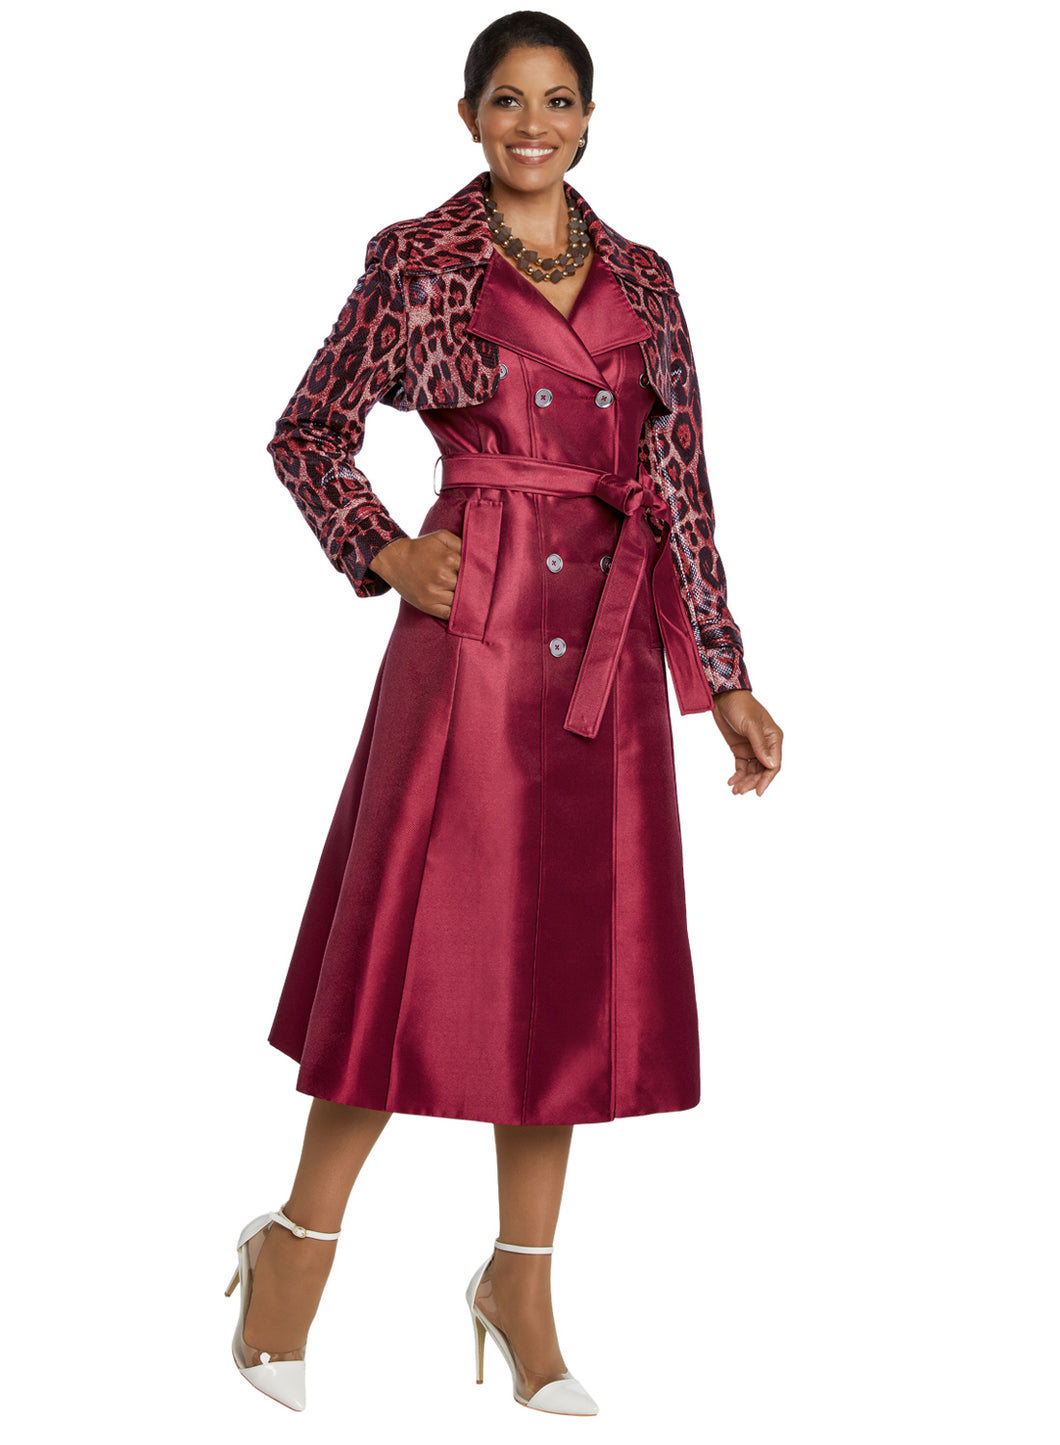 Donna Vinci Knit 2 piece Jacket and Dress Set - 5643